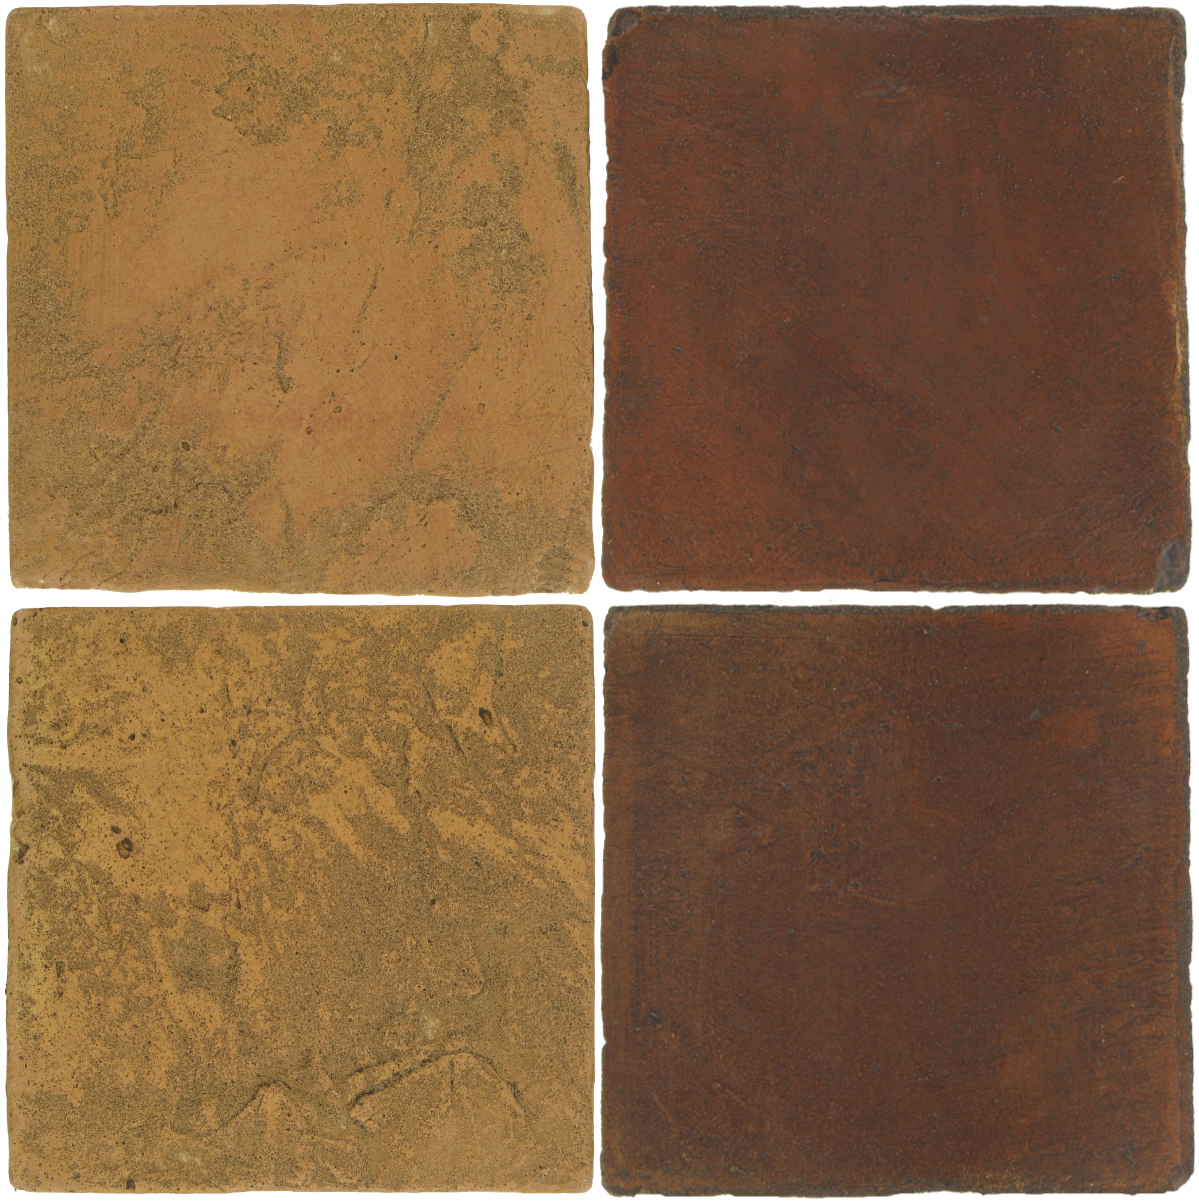 Pedralbes Antique Terracotta  2 Color Combinations  VTG-PSSW Siena Wheat + OHS-PSOW Old World